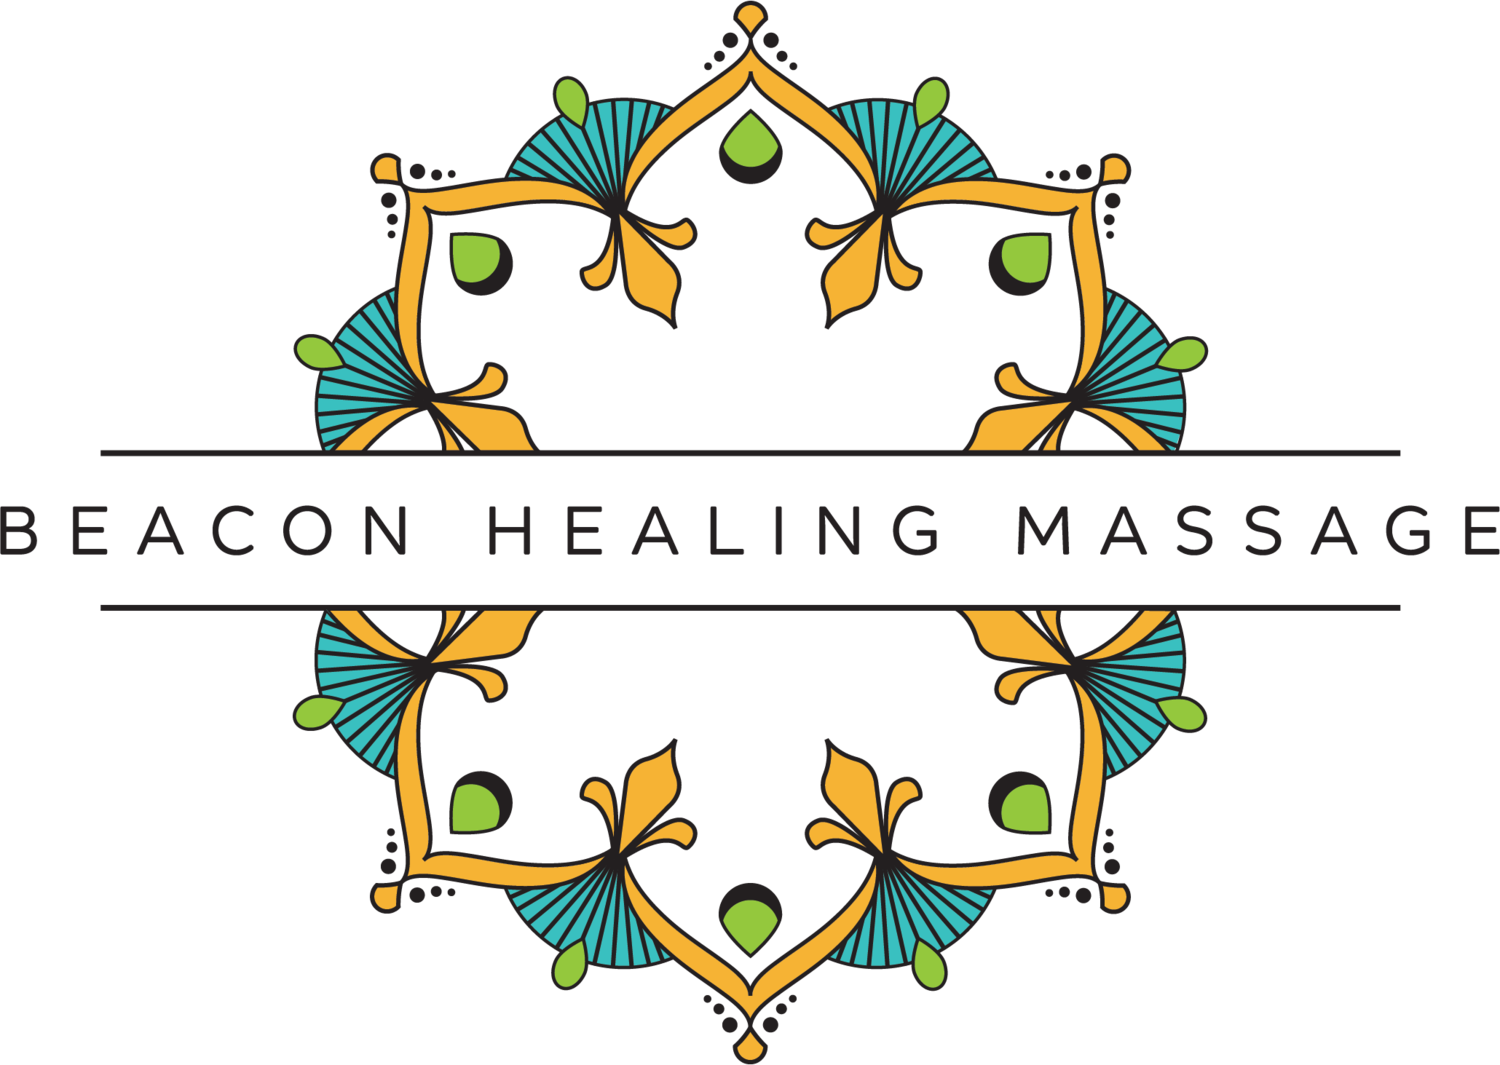 Beacon Healing Massage